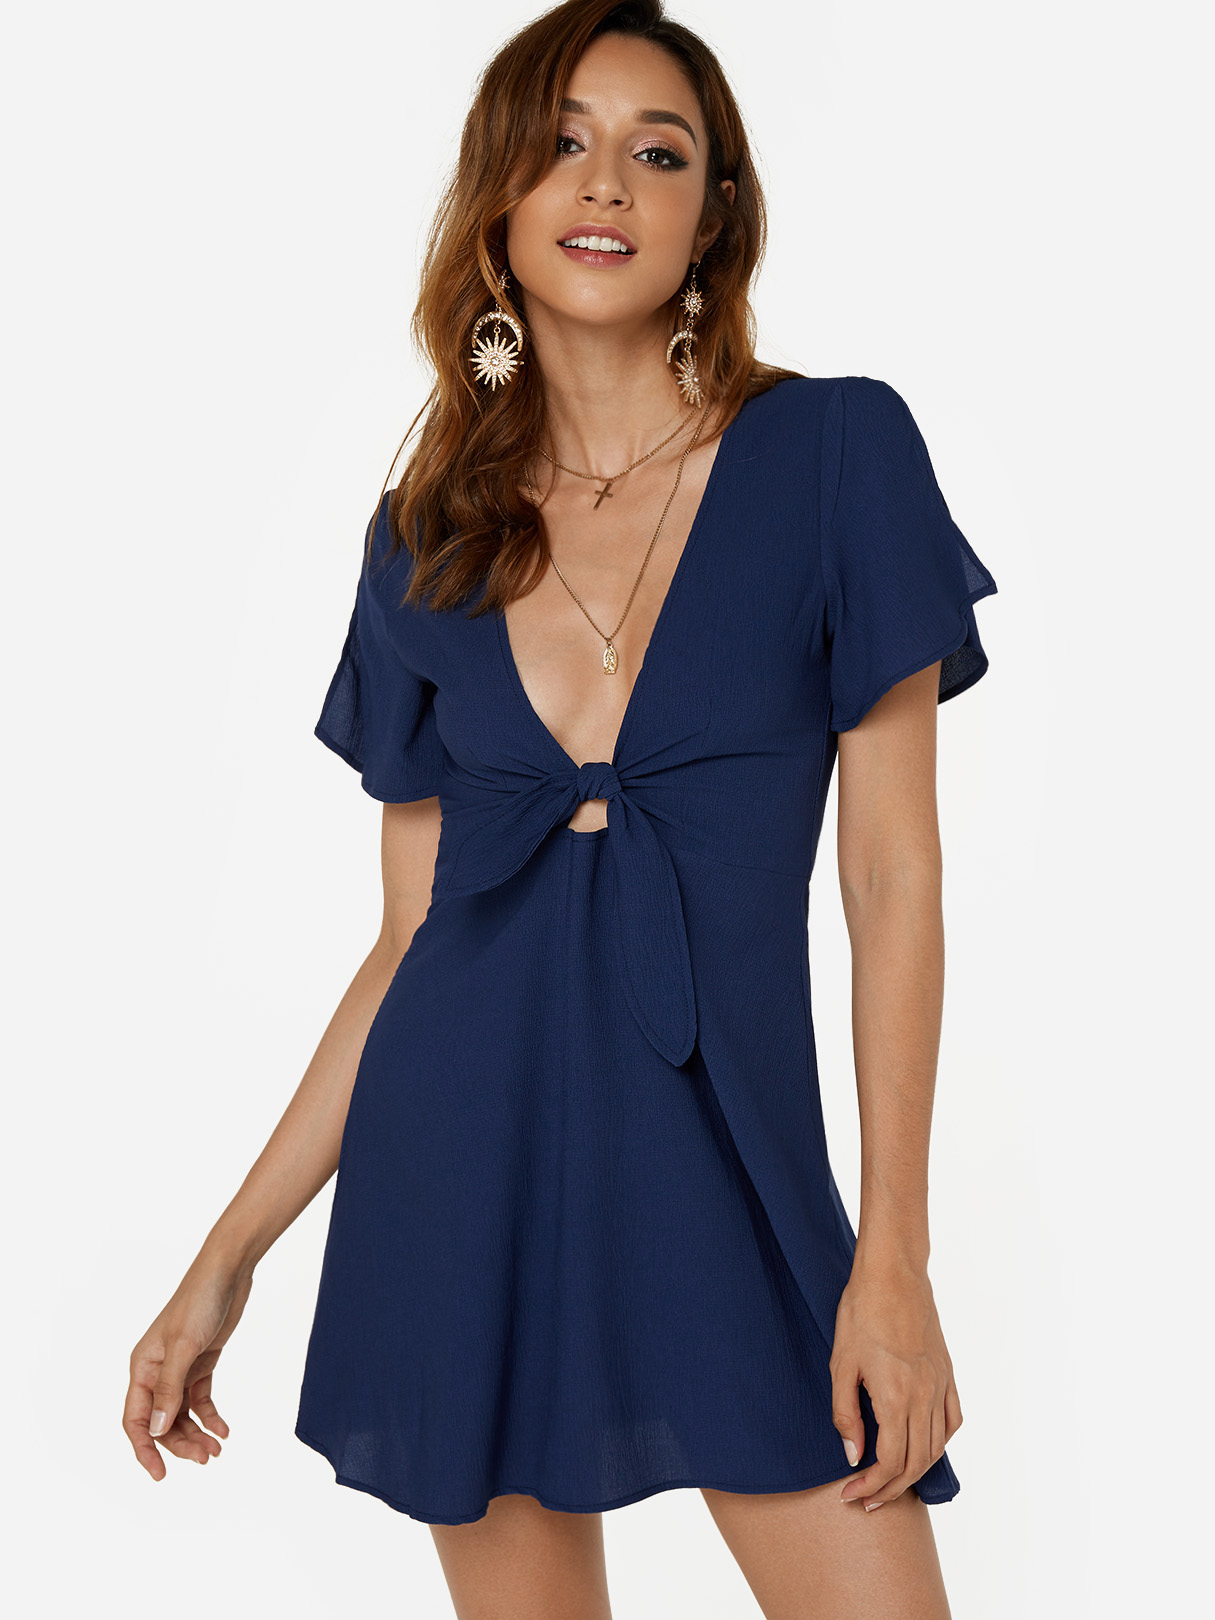 Navy Self-tie Design Deep V Neck Slit Sleeves High-waisted Mini Dress